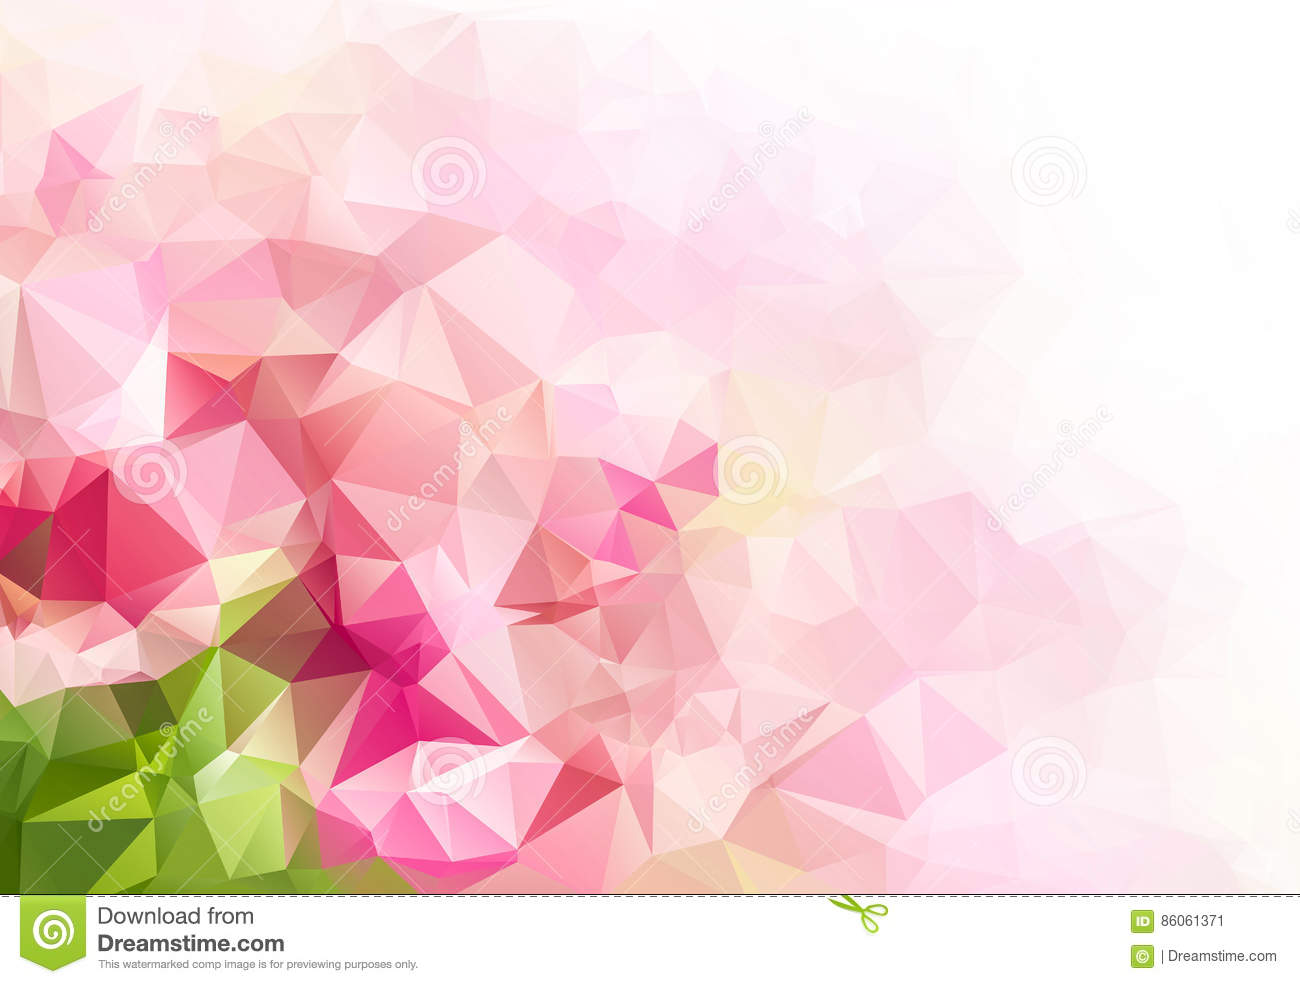 Pink Green Geometric Abstract Colorful Low Poly Background Stock Illustration Illustration Of Geometric Colorful 86061371